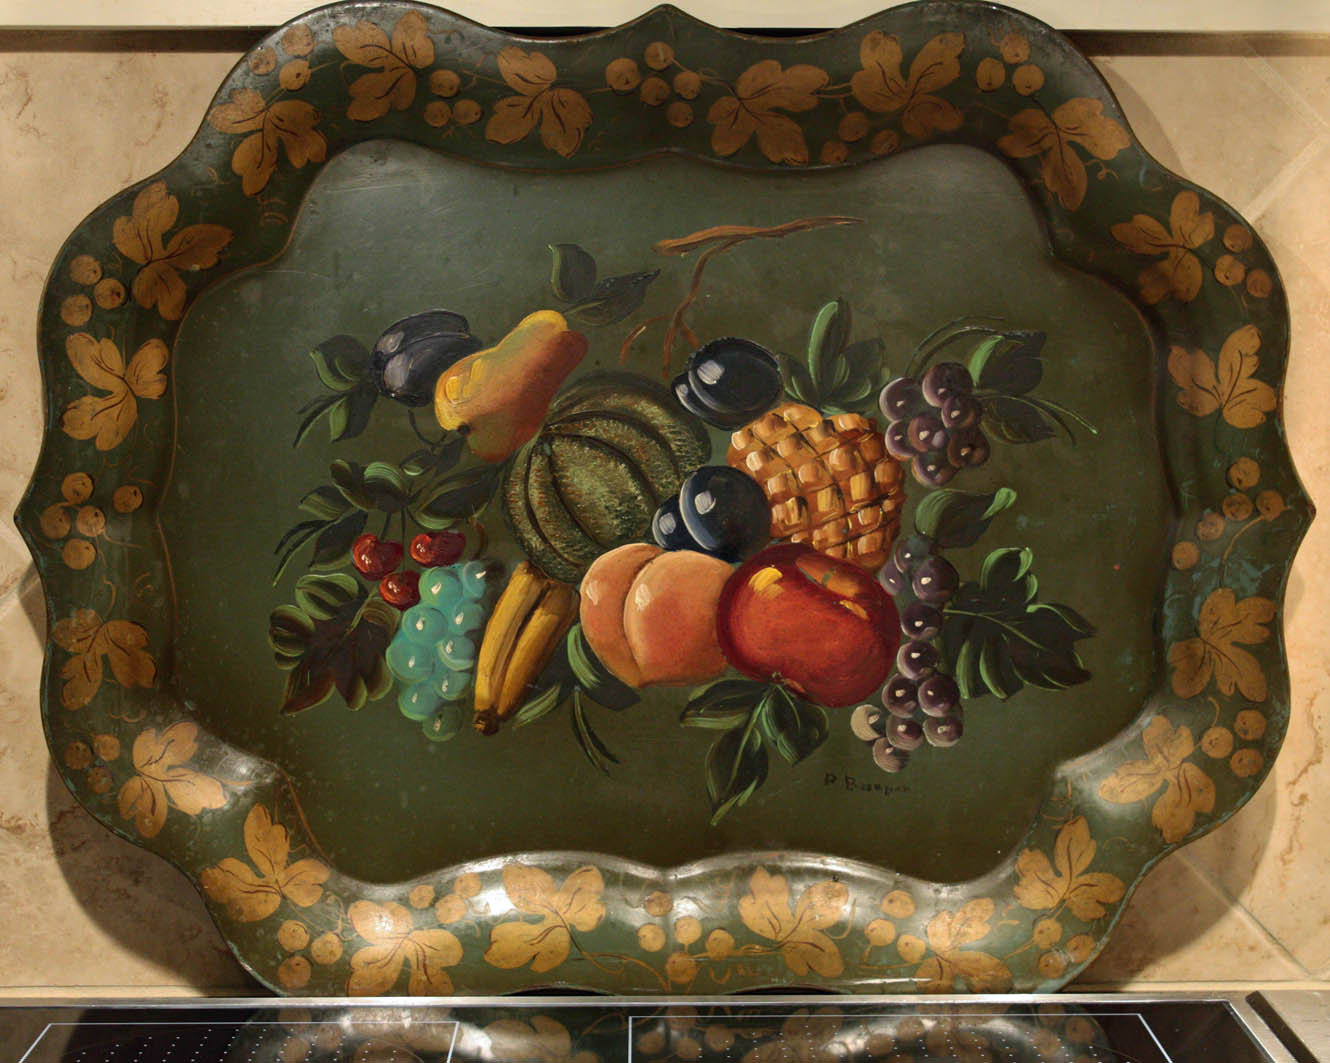 Southern Lagniappe: The Art of Fruit - Where To Purchase Plaques Or Other Art For A Kitchen